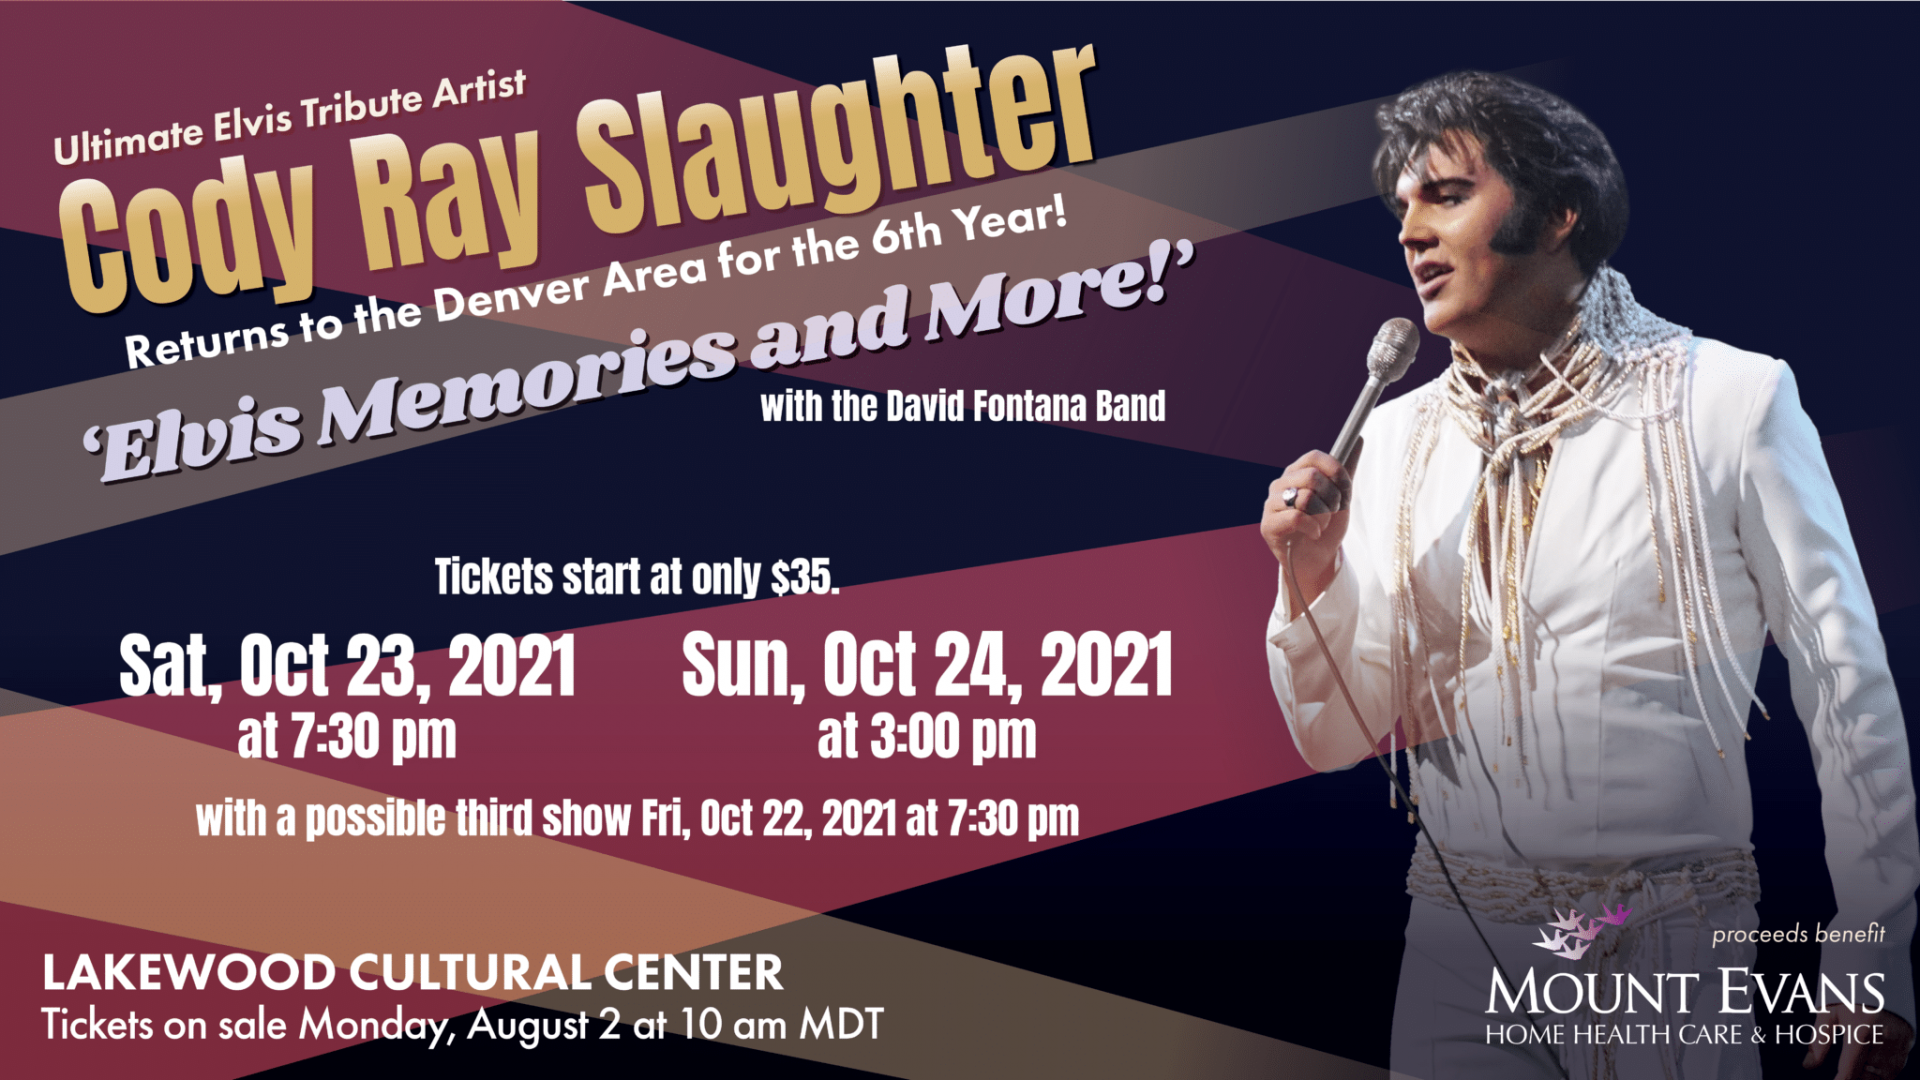 Cody Ray Slaughter Concert graphic